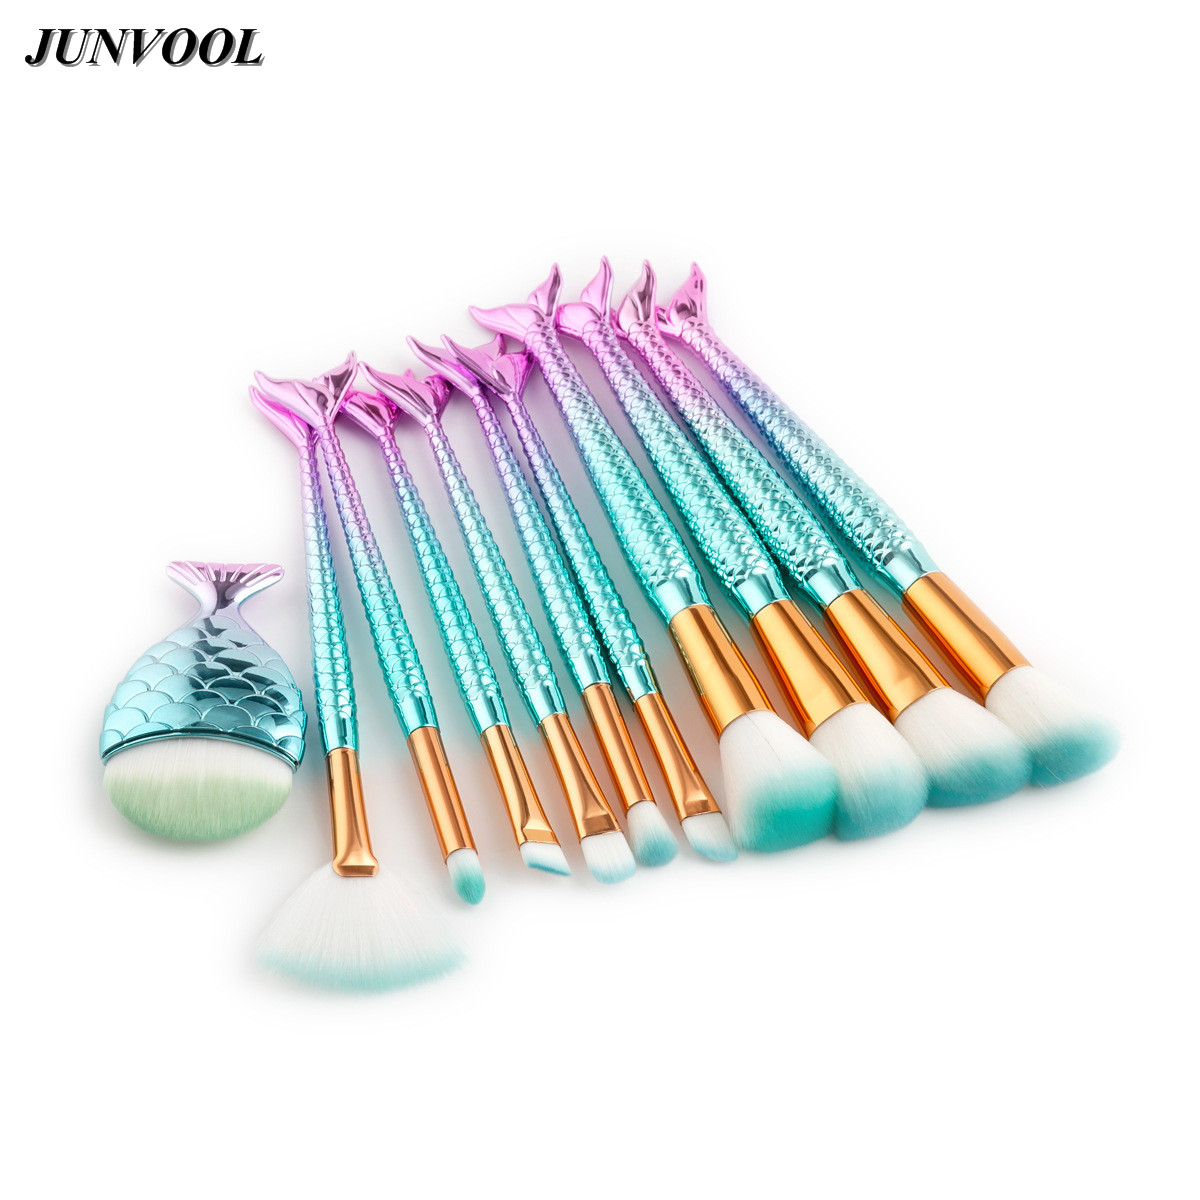 Pro 11Pcs Mermaid Makeup Brush Set Big Fish Tail Foundation Powder Make-up Tools Eyeshadow Contour Blending Cosmetic Fan Brushes 1000g 98% fish collagen powder high purity for functional food